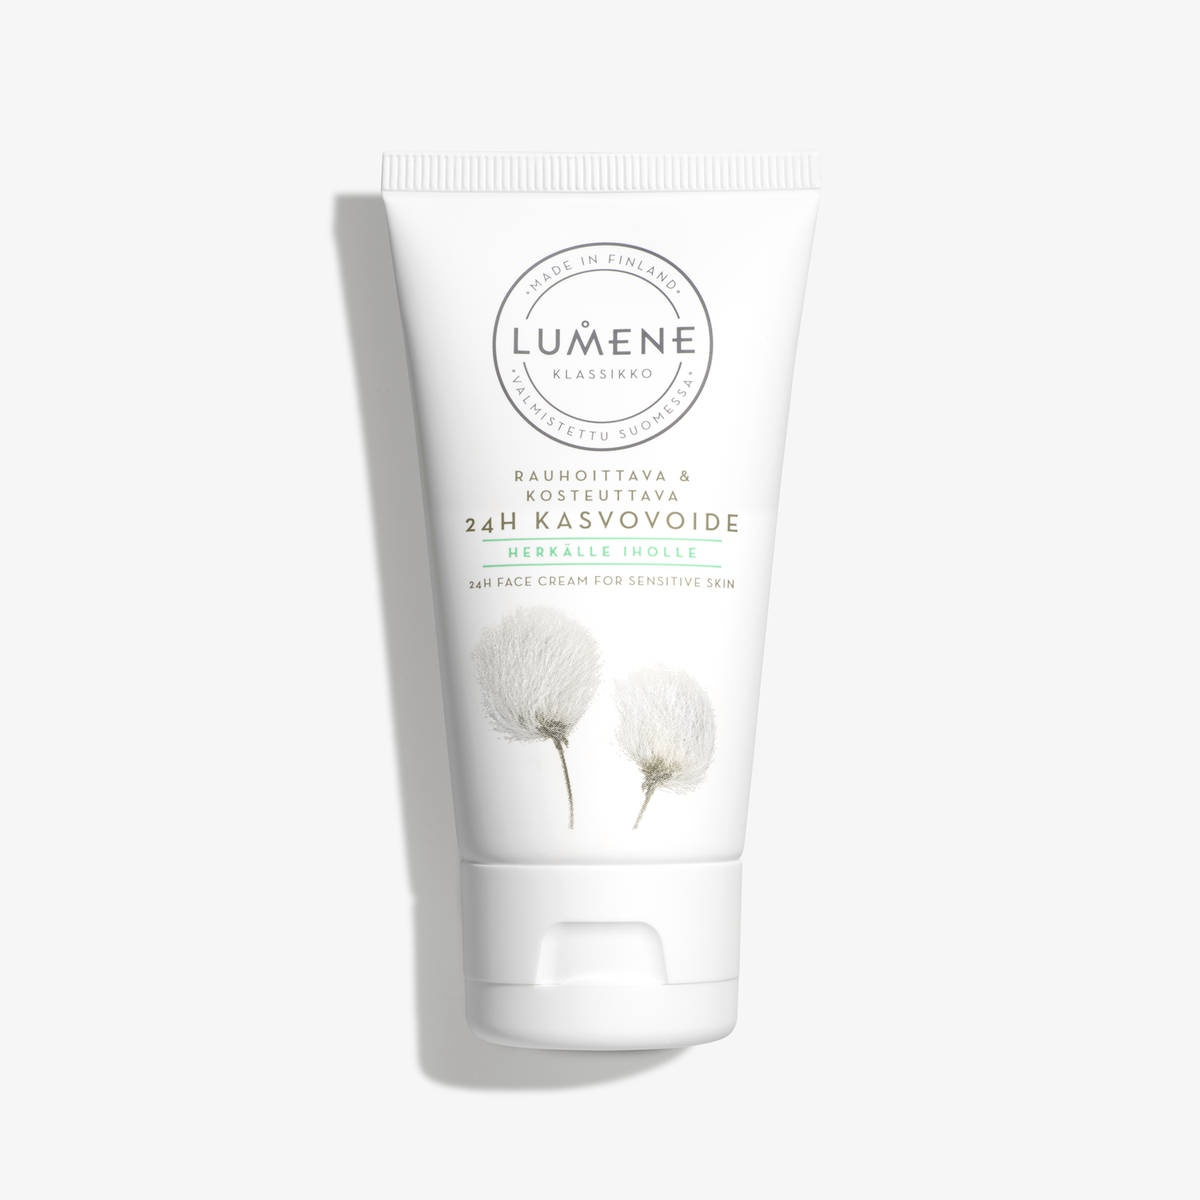 Lumene 24H Face Cream For Sensitive Skin